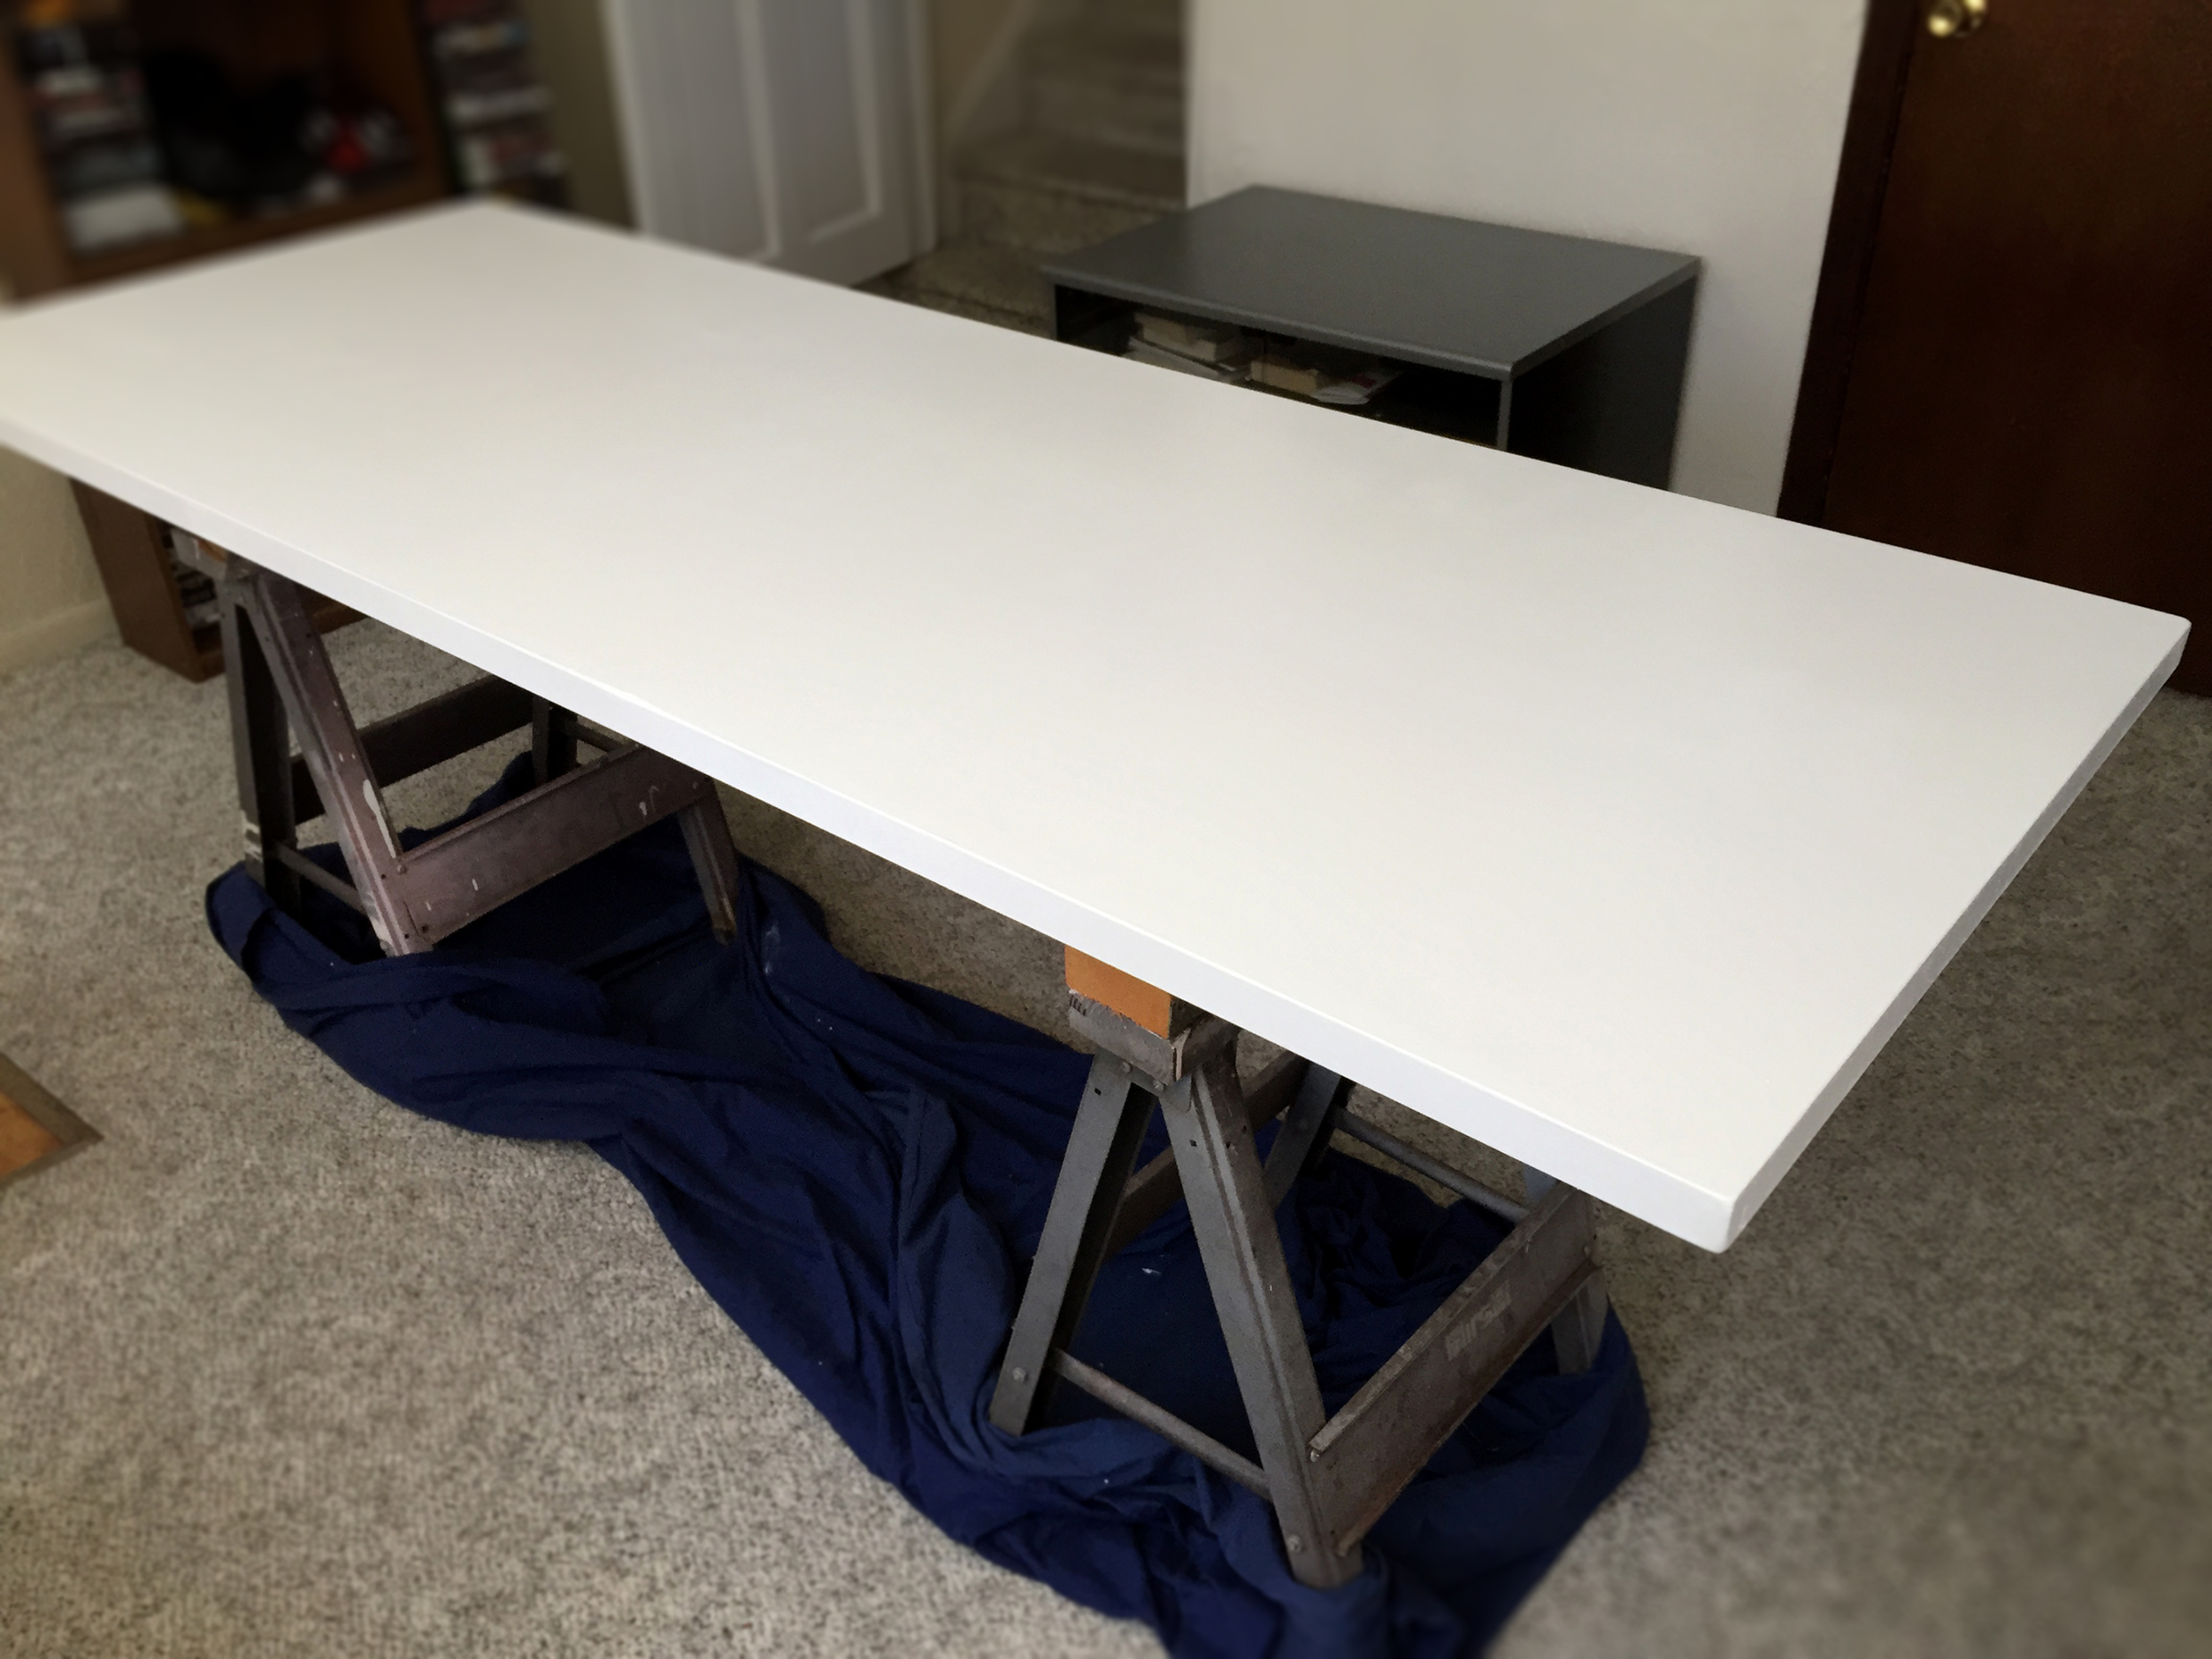 Painting the desk